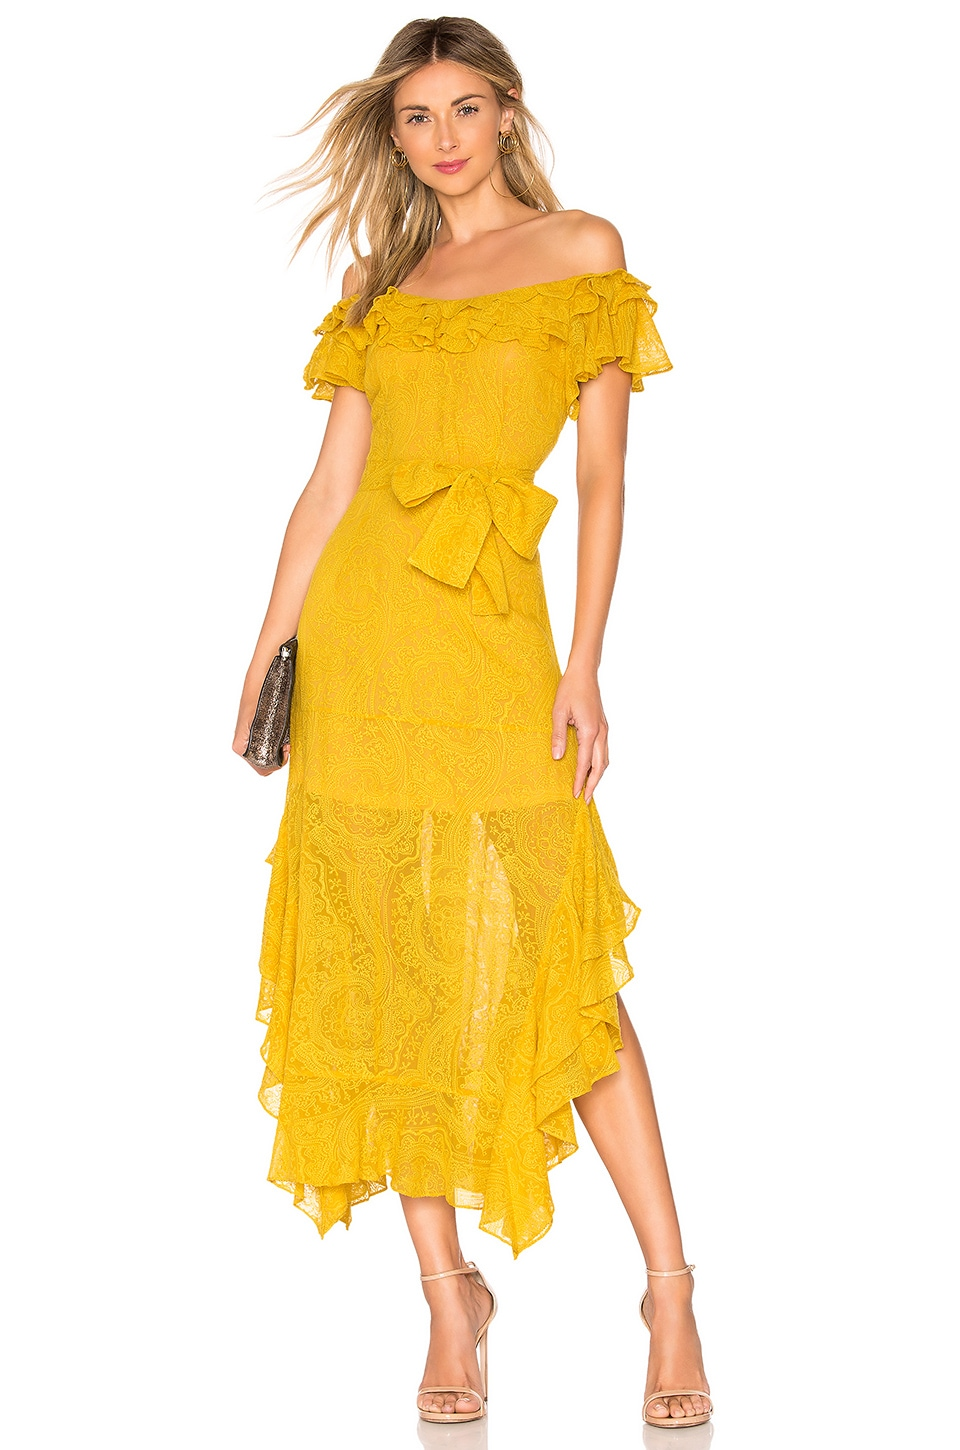 Marissa Webb Sofia Embroidered Dress in Saffron Yellow